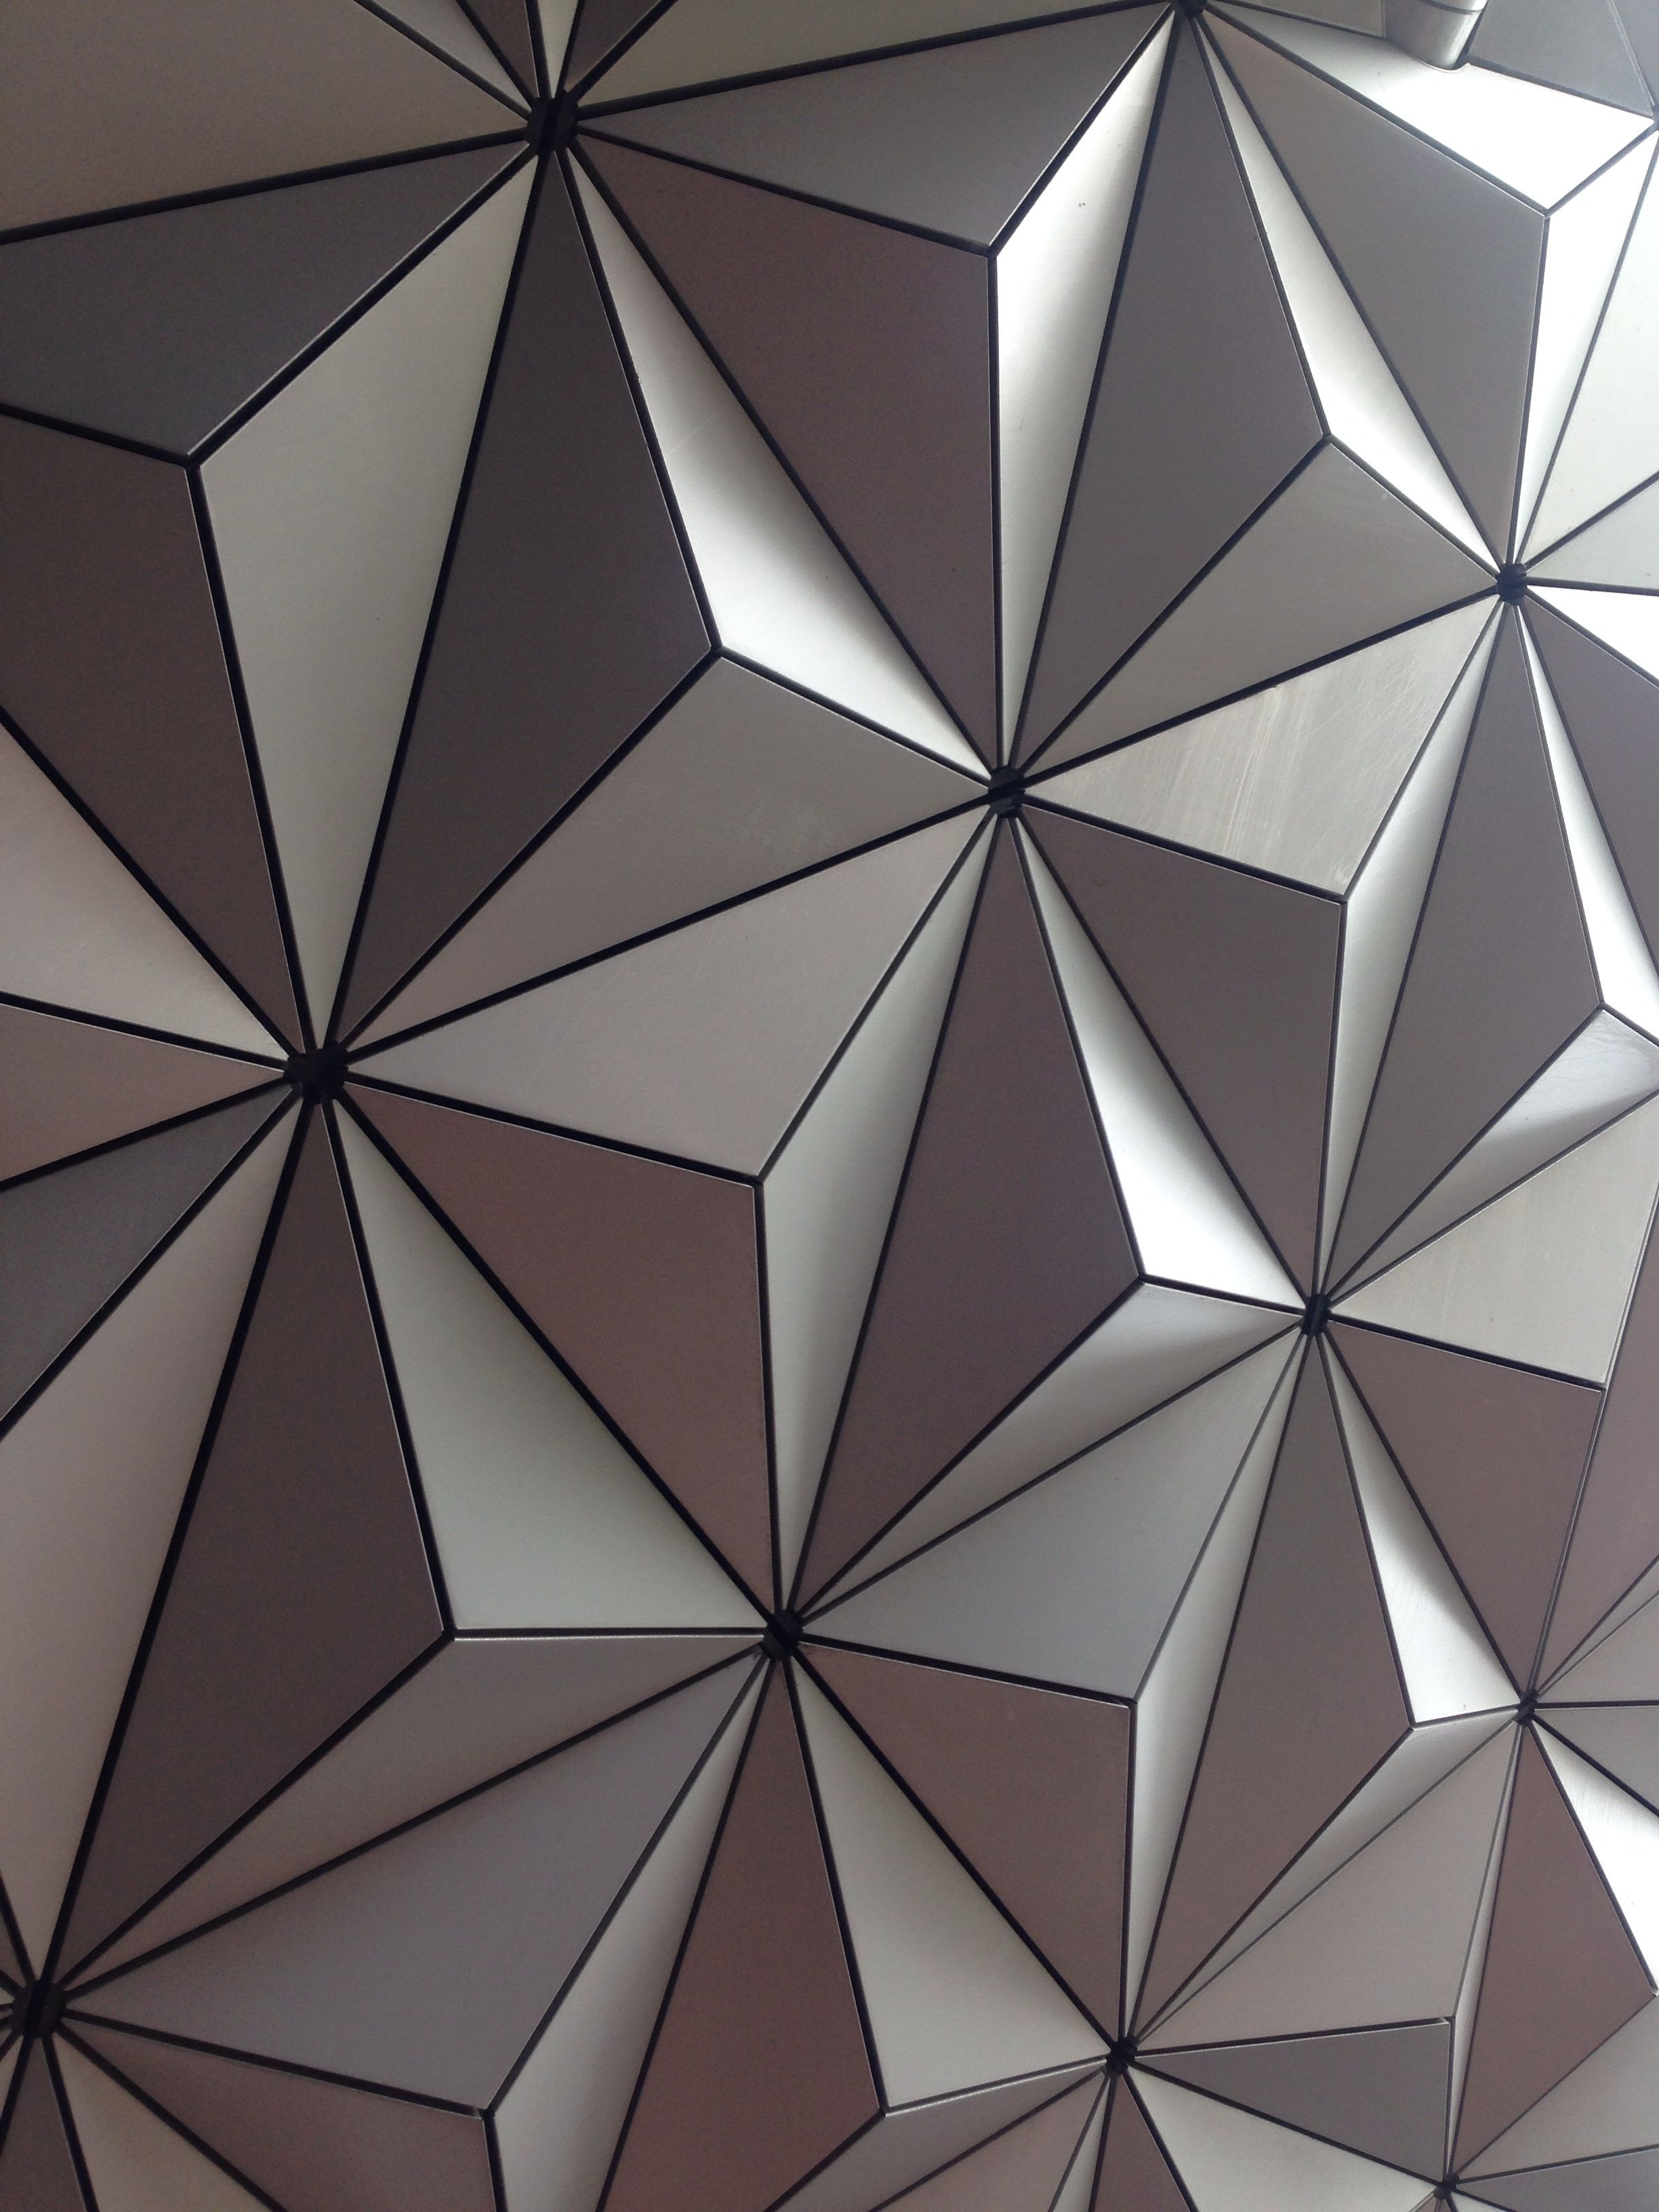 Epcot Globe Faceted Surface At Disney Textures Wall Design